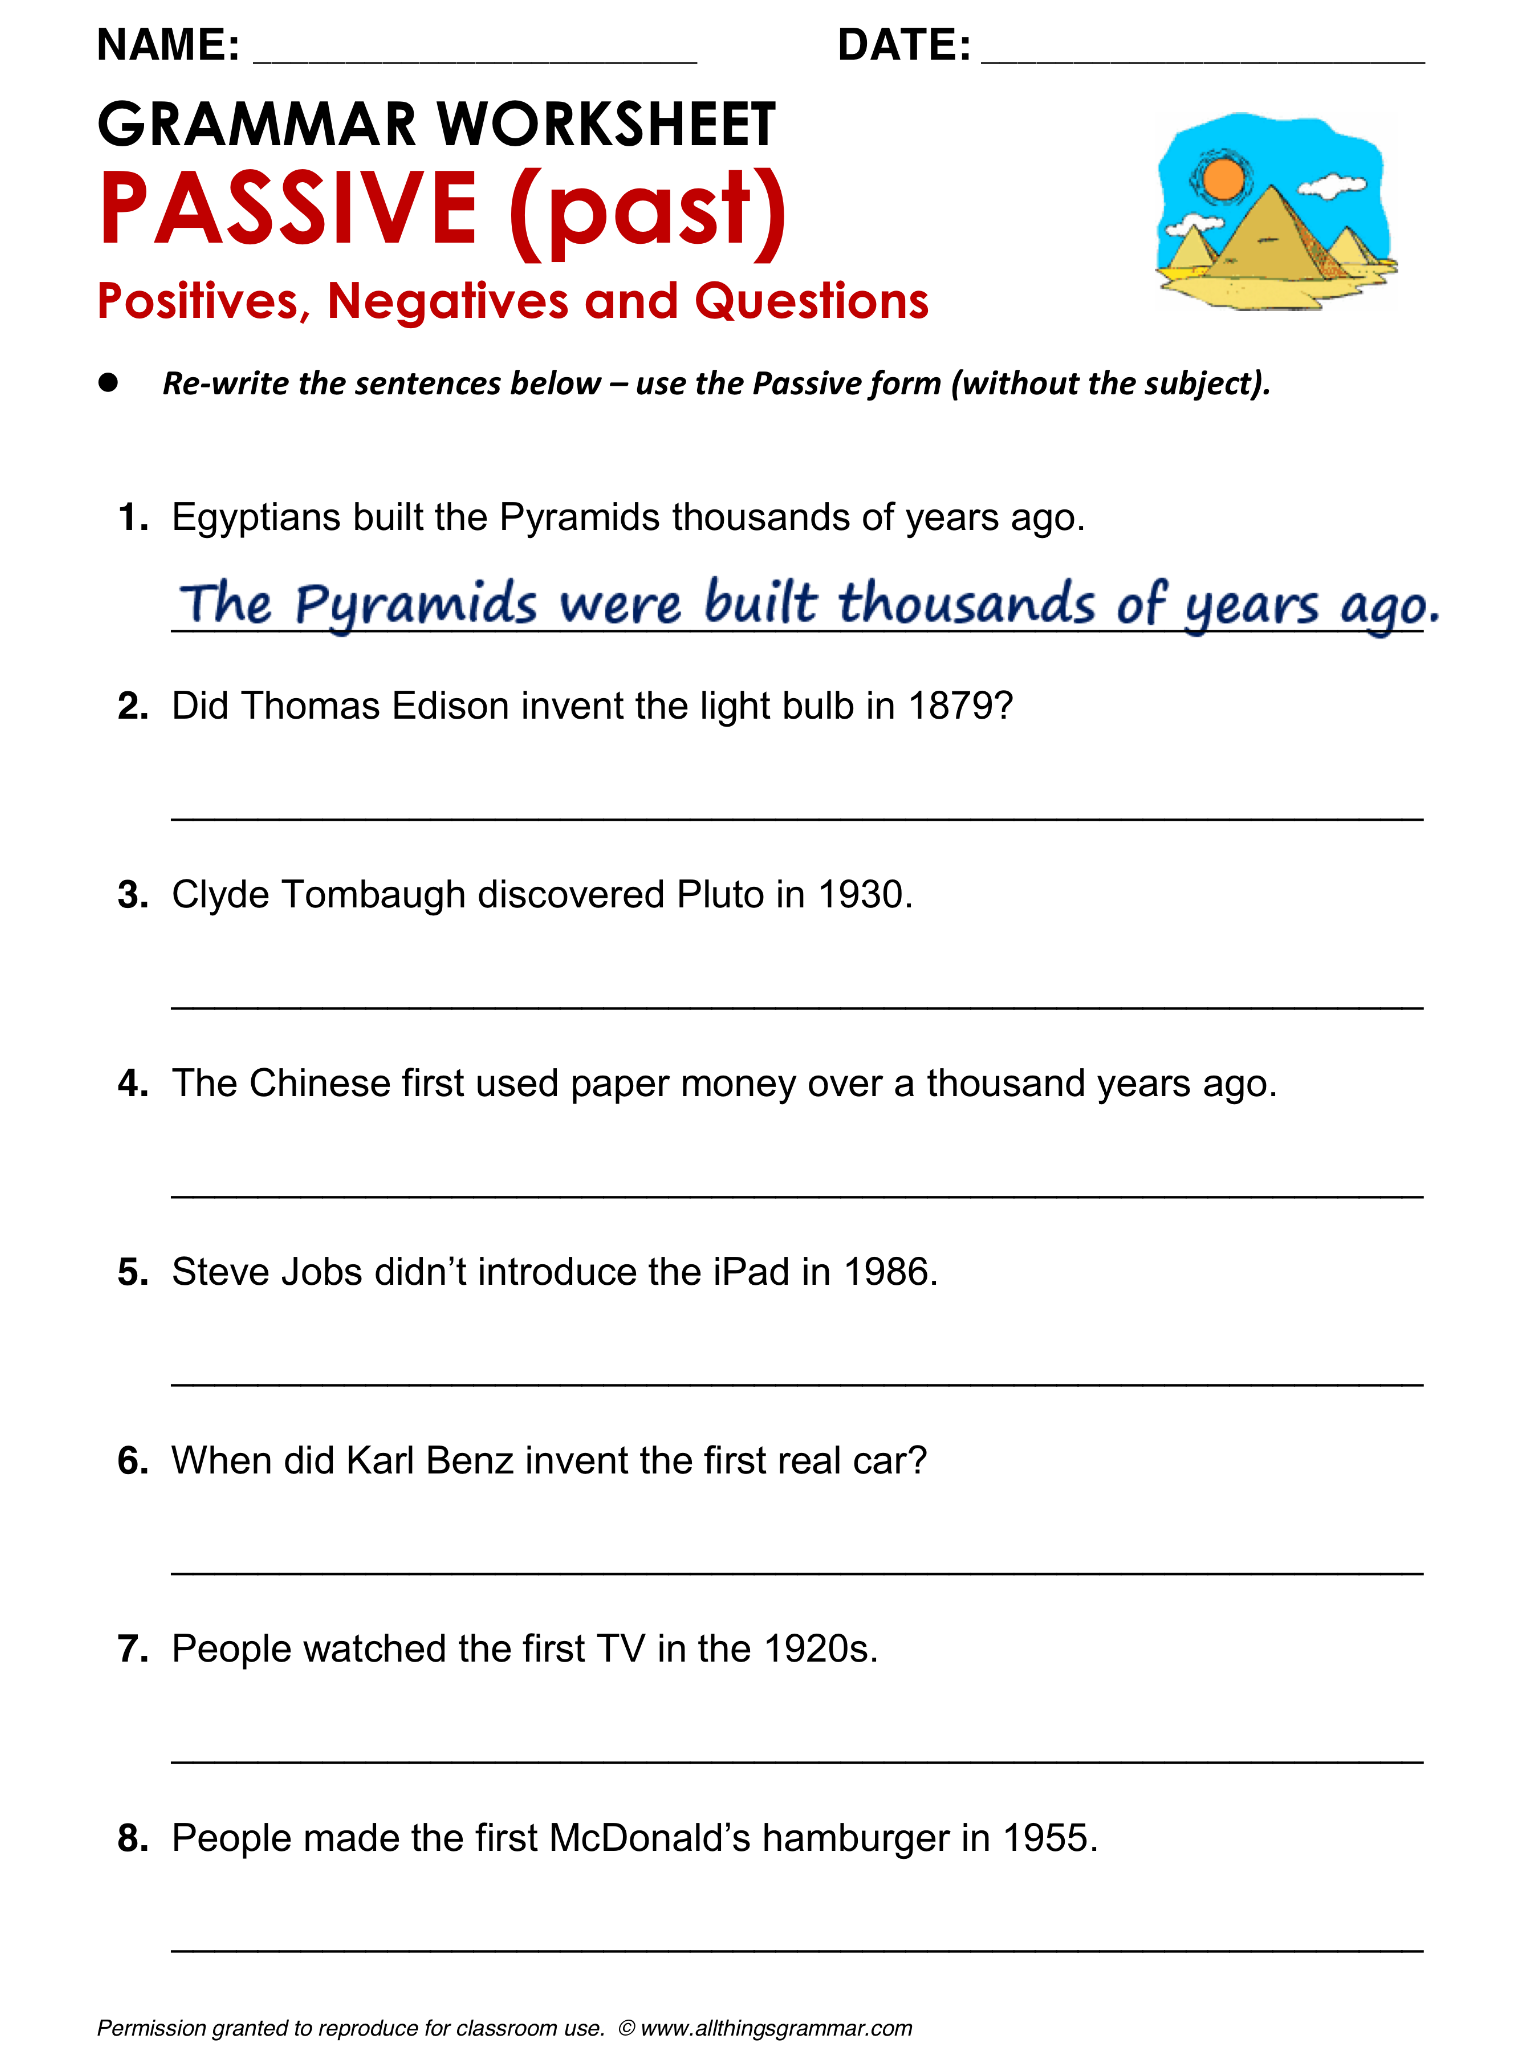 worksheet English Grammar For Adults Worksheets english grammar worksheet passive past positives negatives and questions active